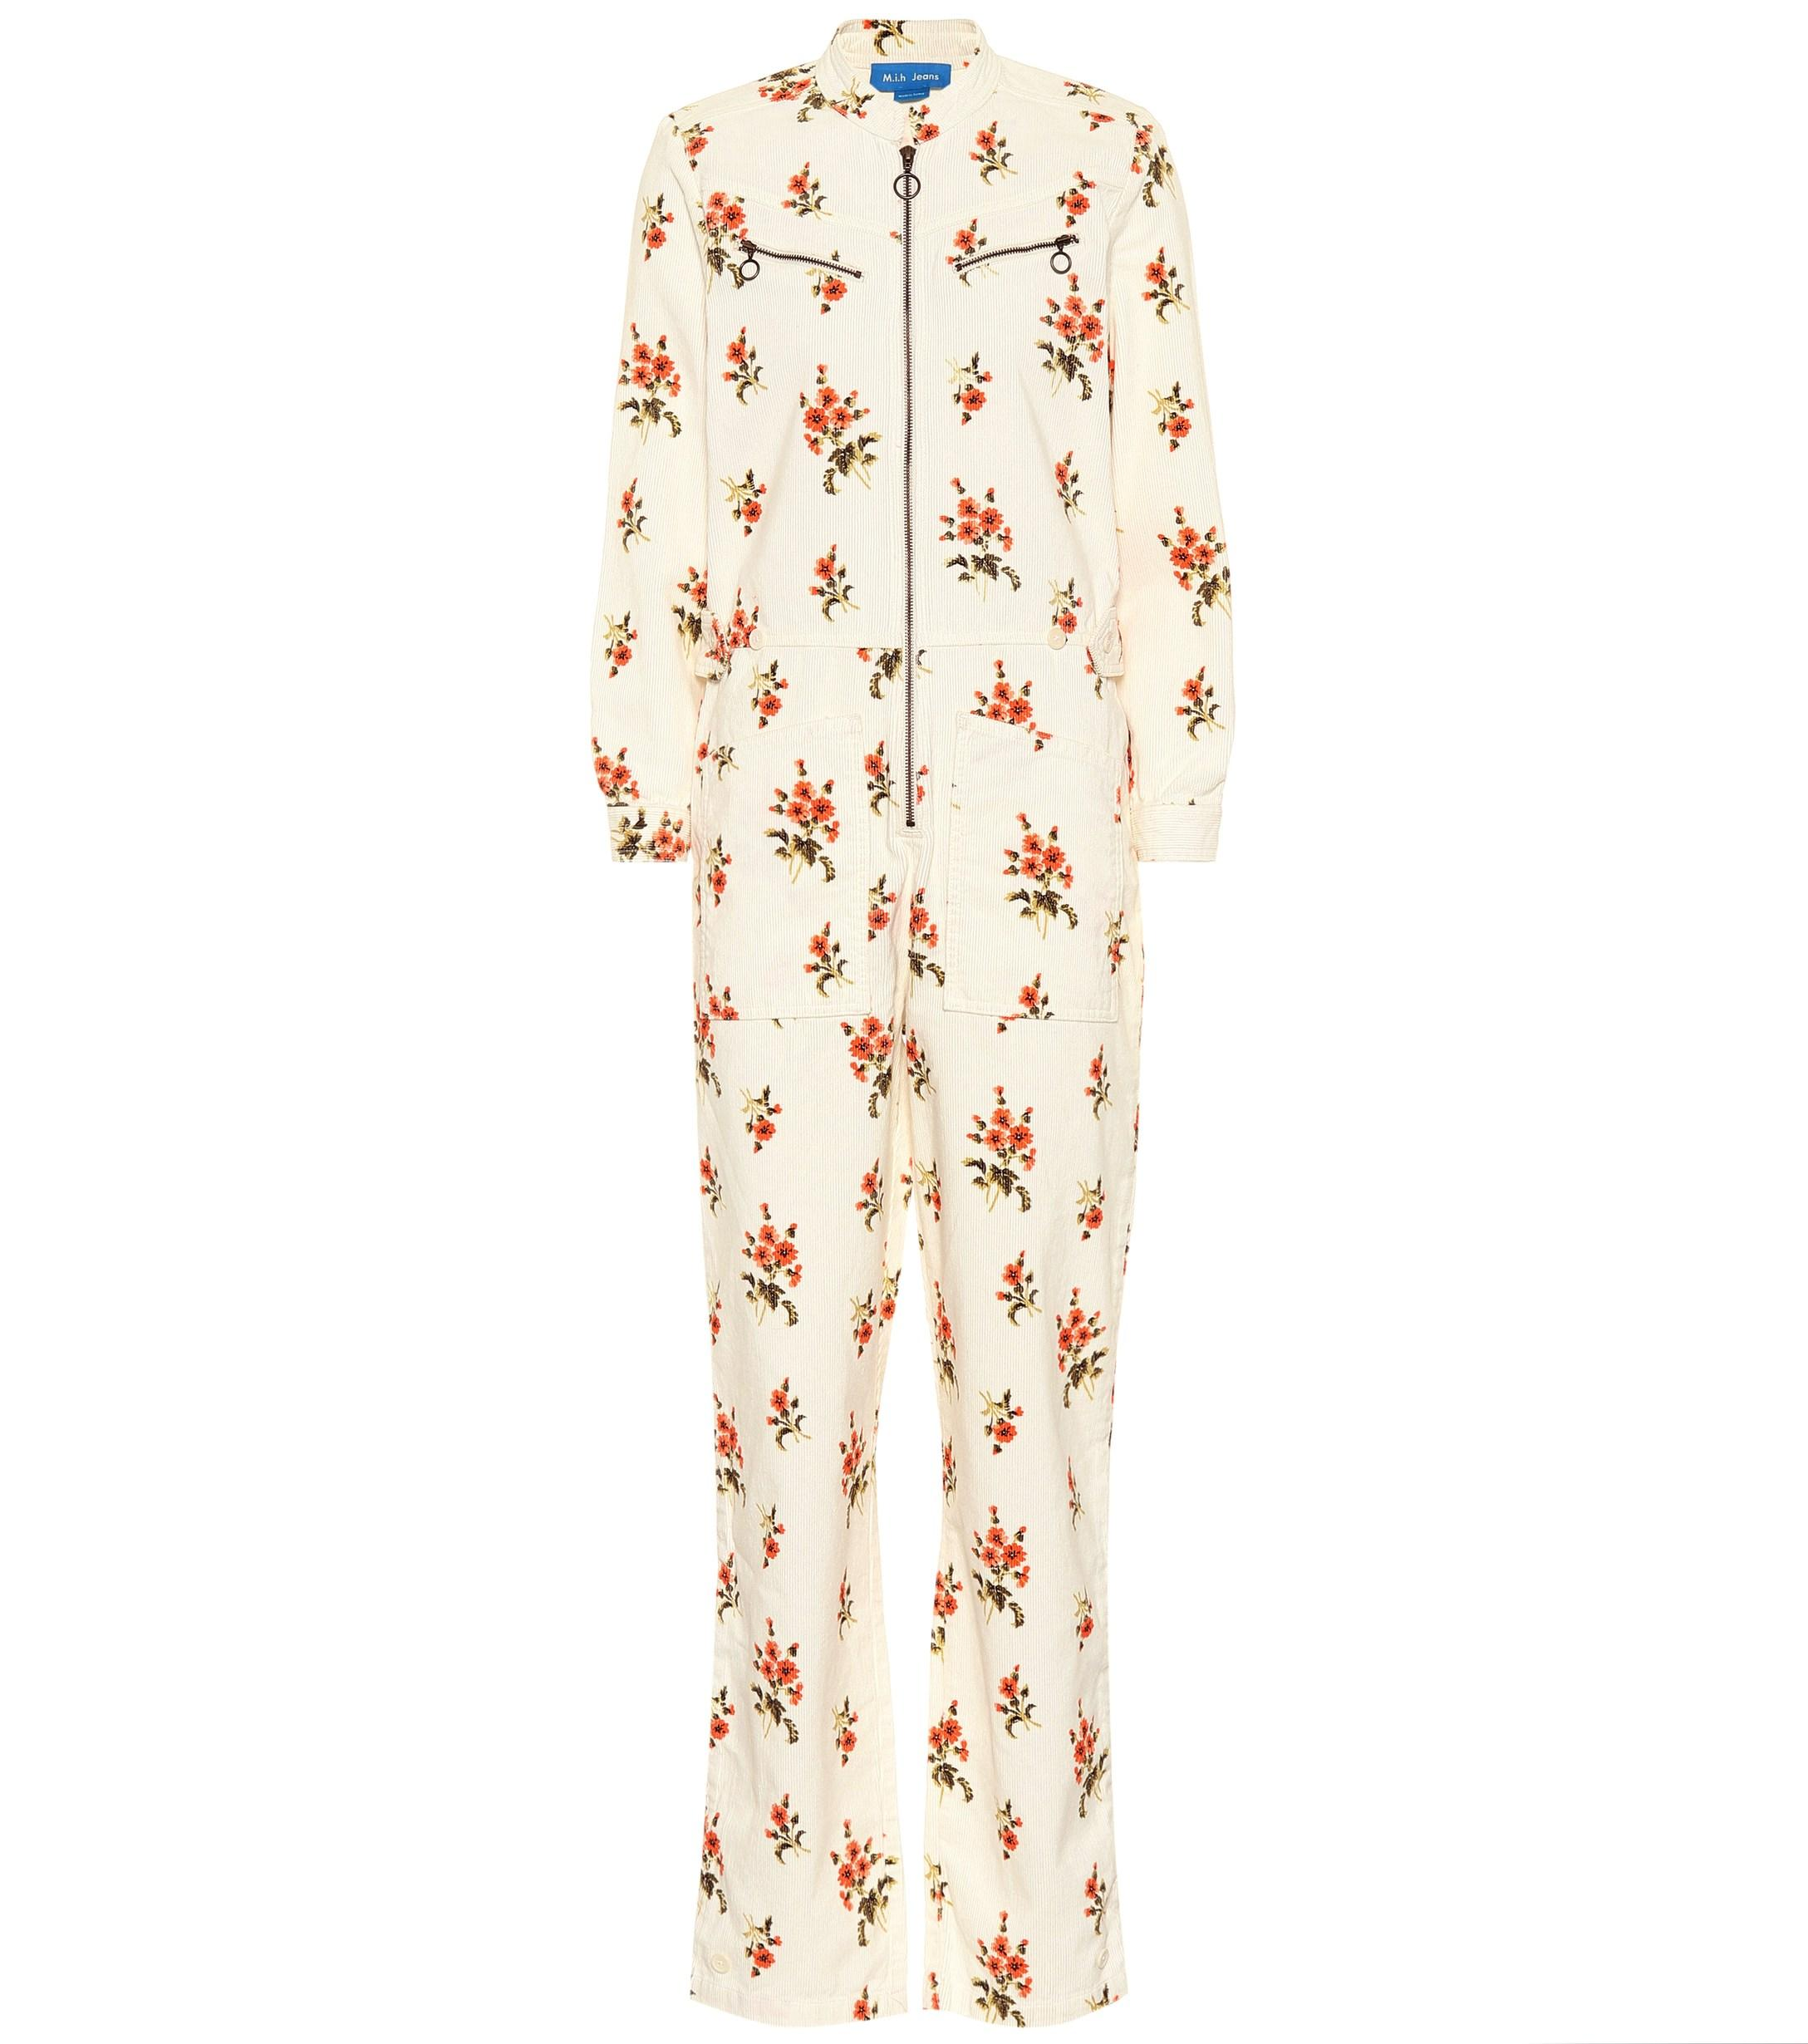 bfdda62df437 Lyst - M.i.h Jeans Margot All In One Corduroy Jumpsuit in Natural